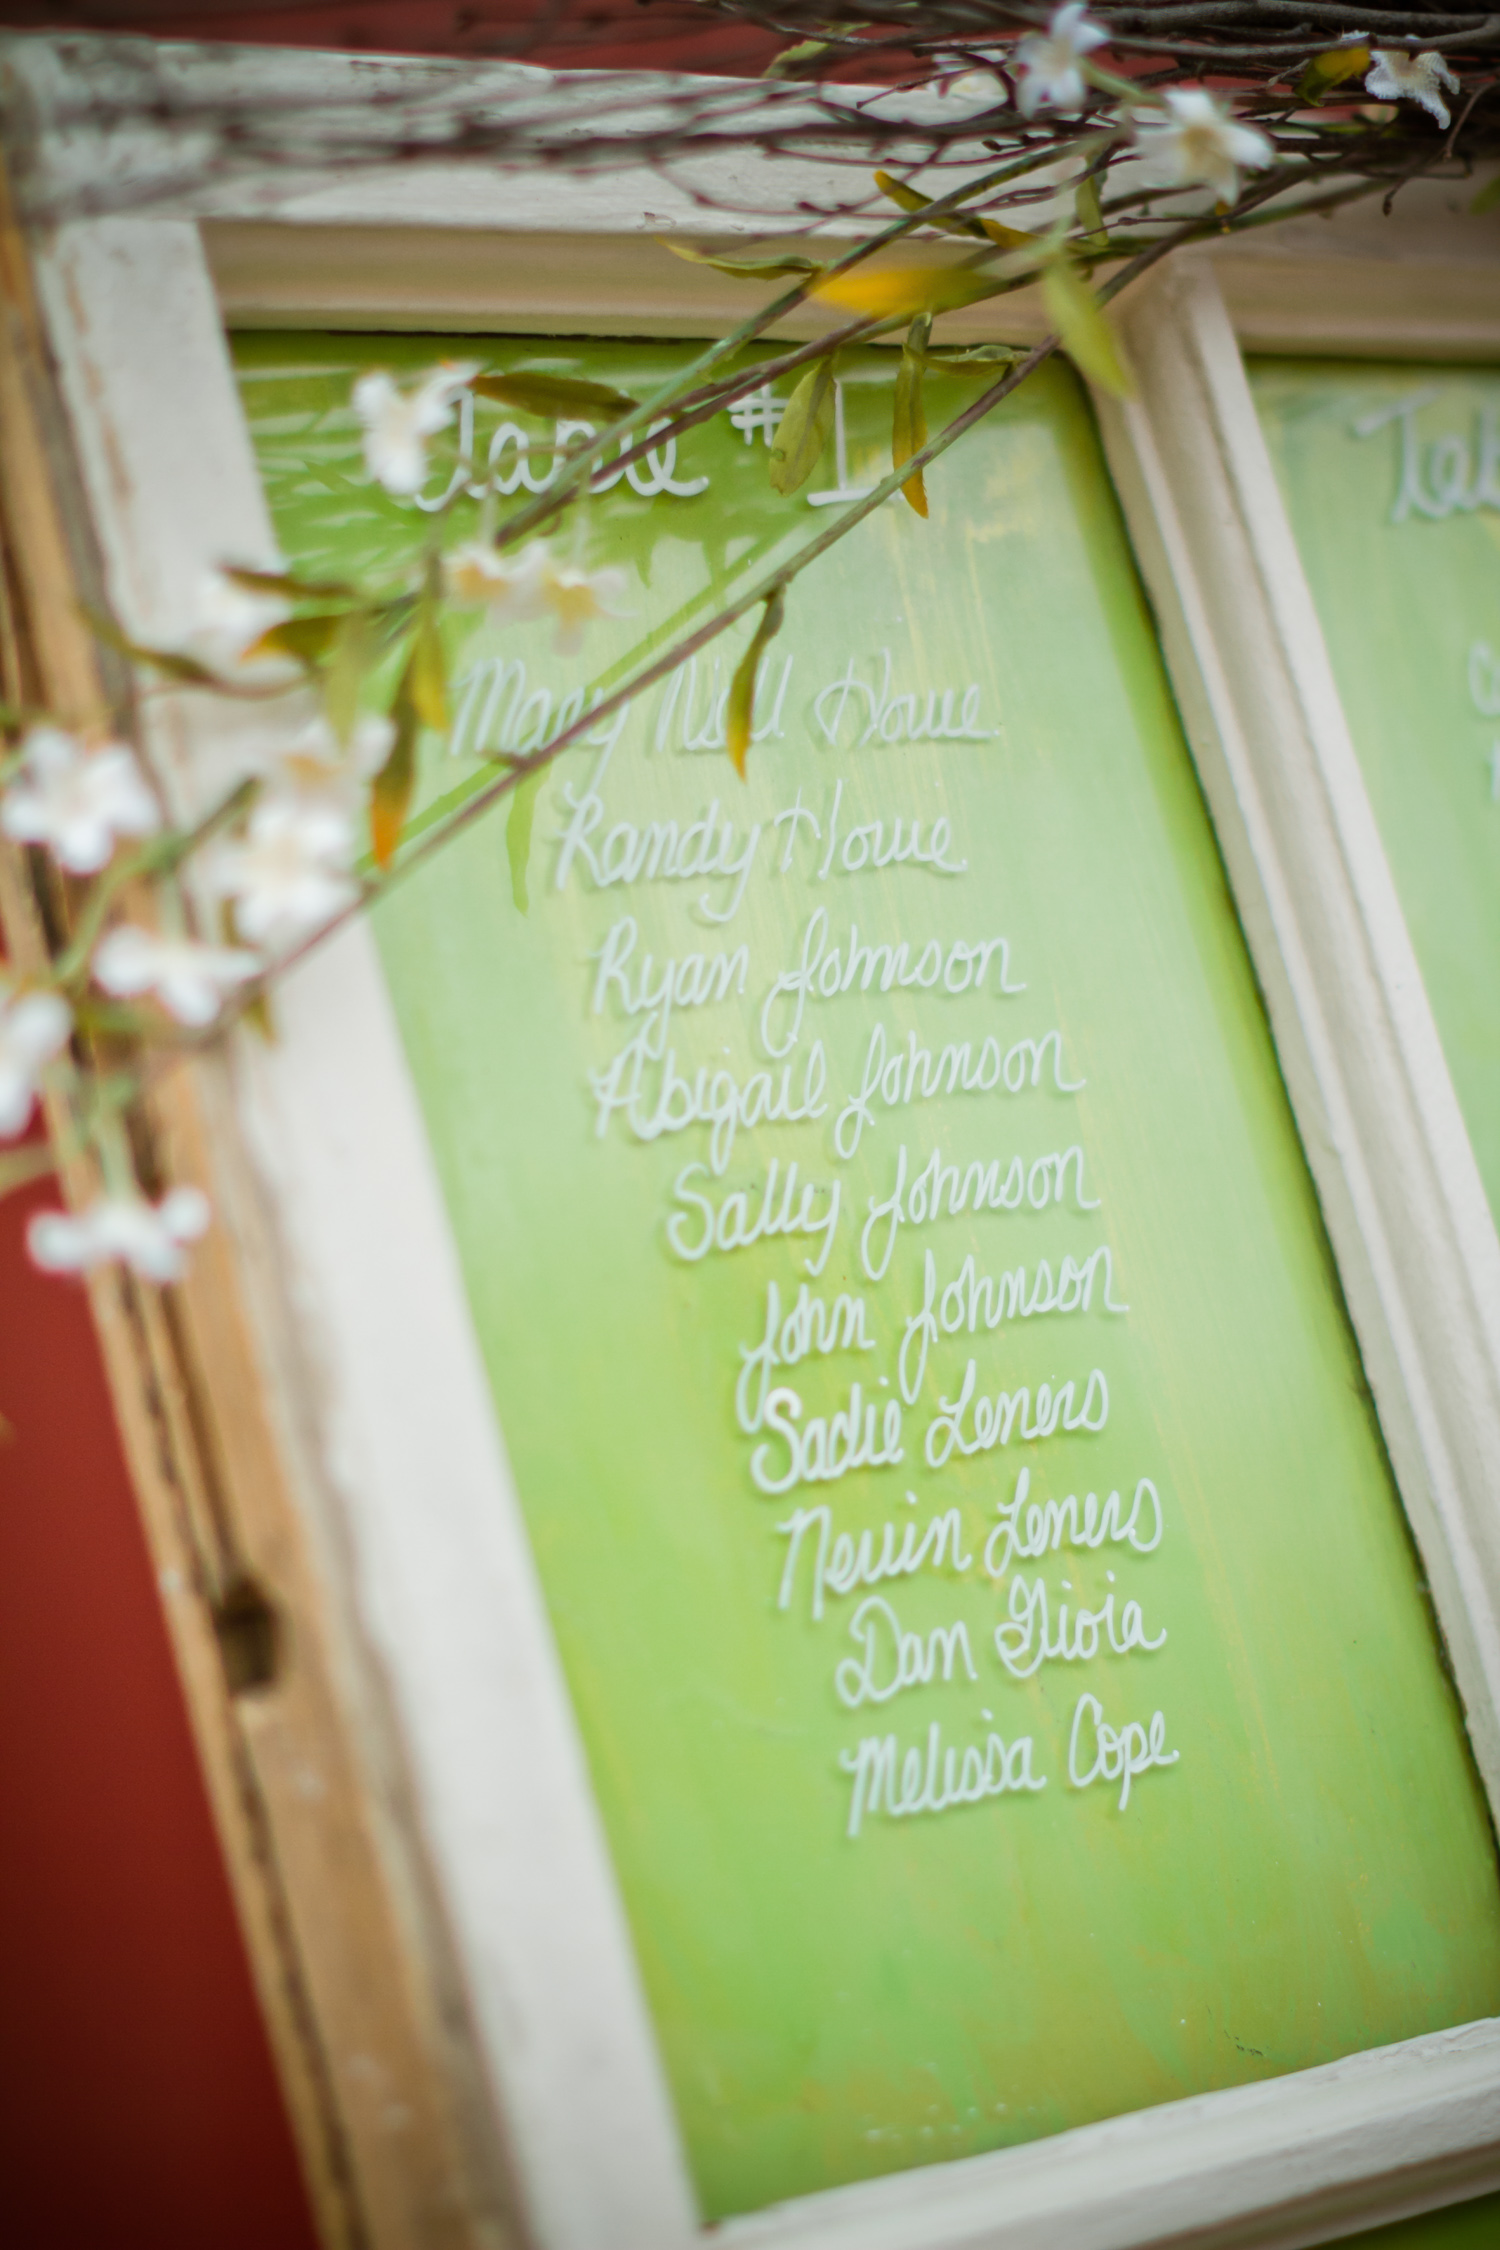 Crooked_Willow_Farms_Wedding_051.JPG